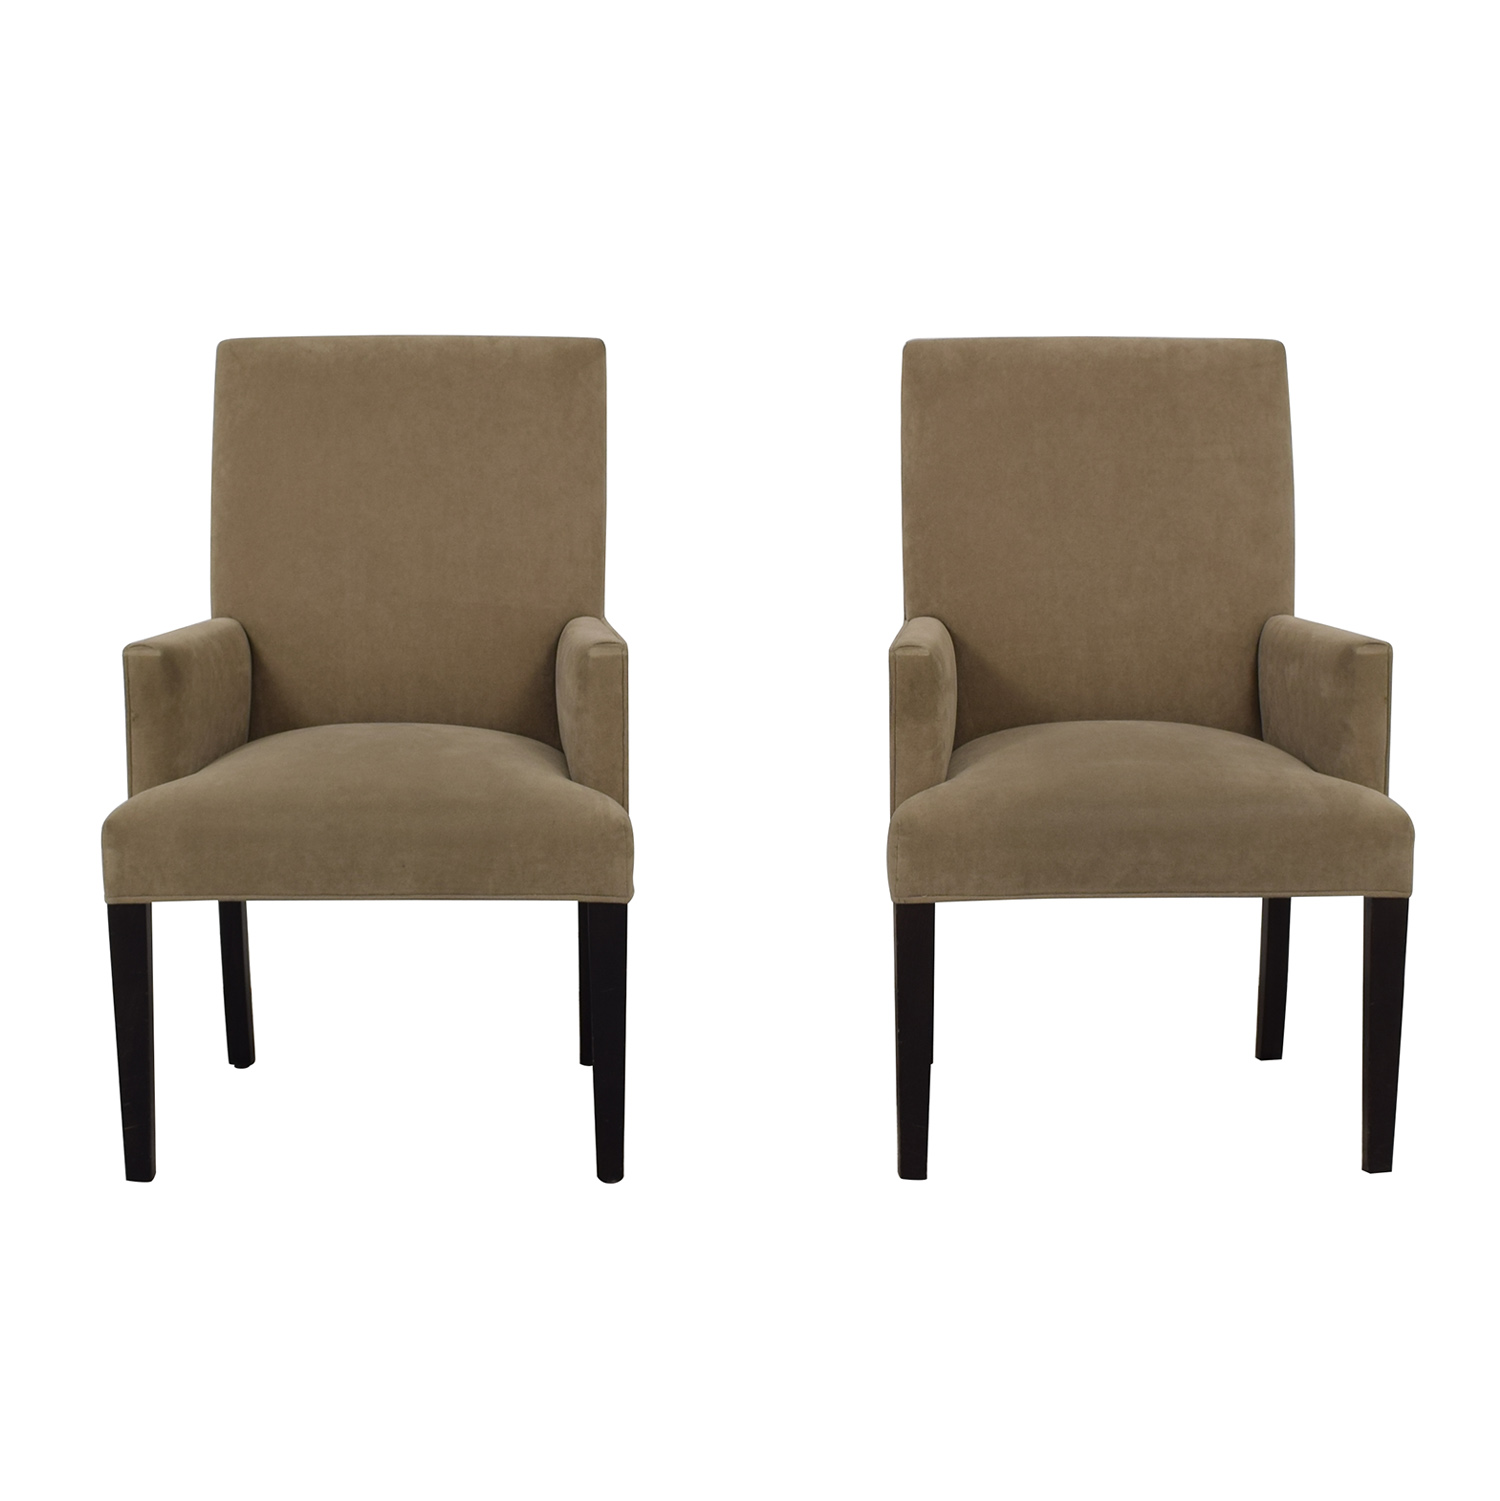 shop Crate & Barrel Tan Dining Chairs Crate & Barrel Chairs